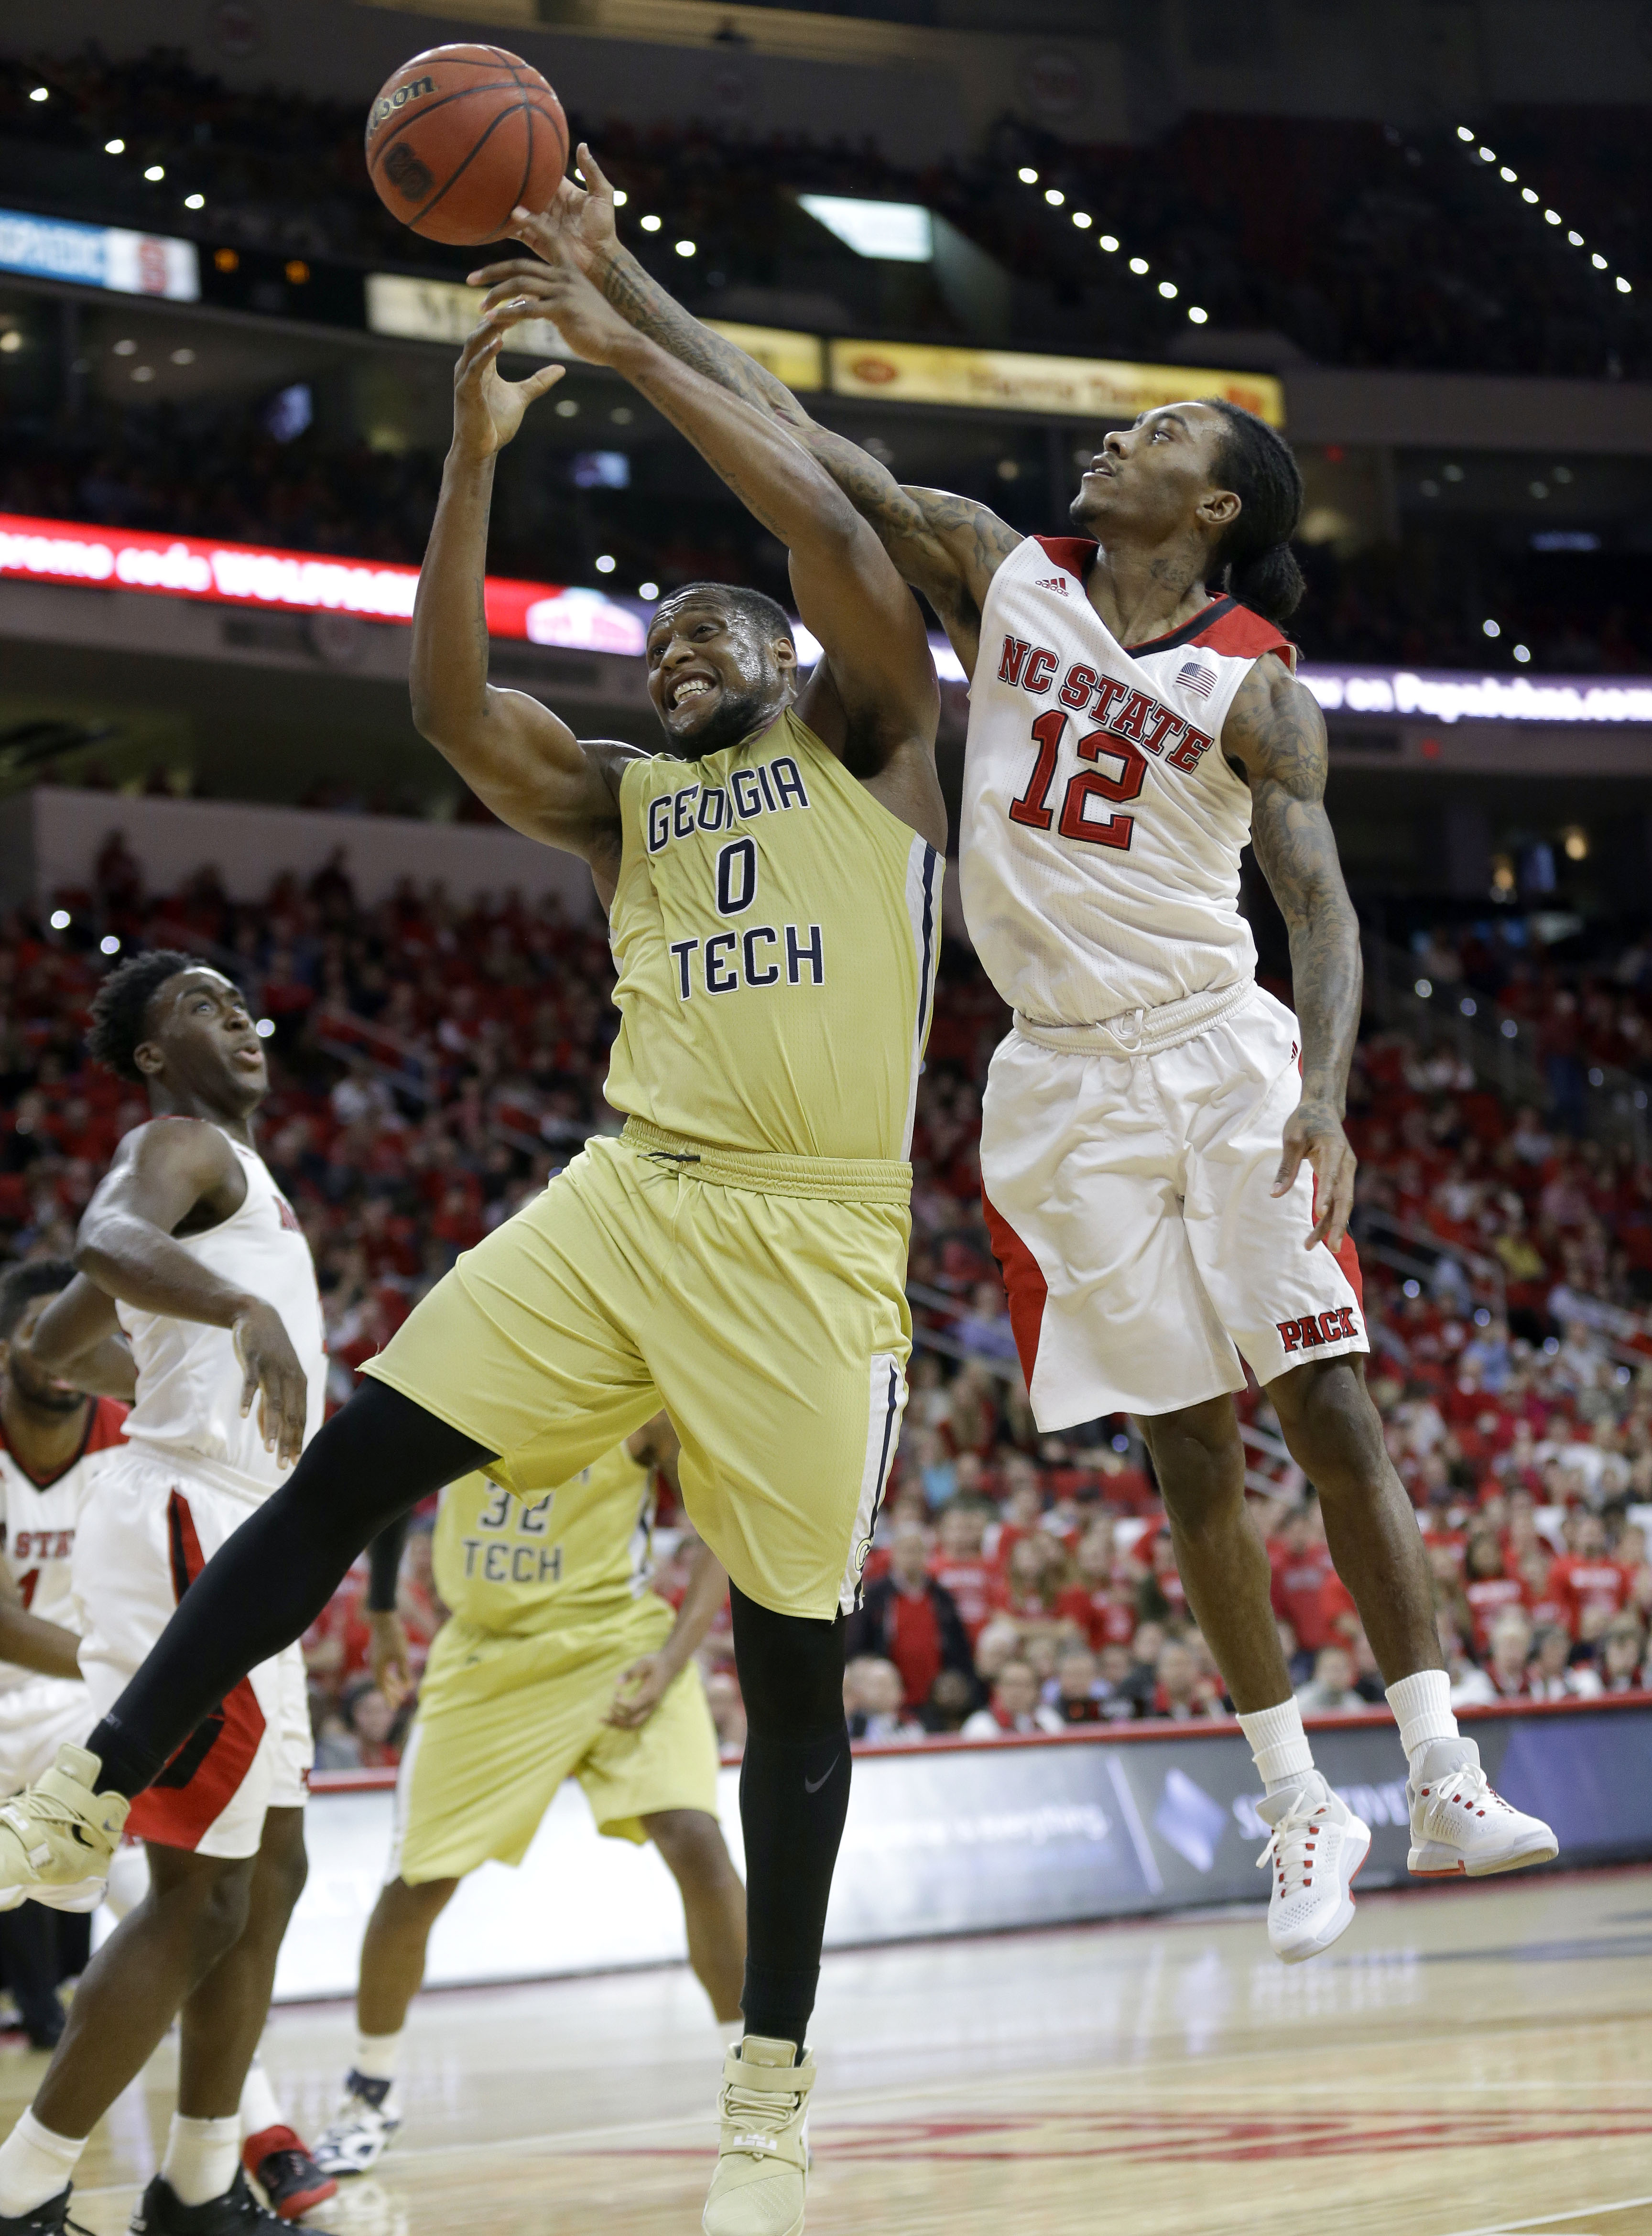 Georgia Tech's Charles Mitchell (0) drives to the basket as North Carolina State's Anthony Barber (12) defends during the second half of an NCAA college basketball game in Raleigh, N.C., Wednesday, Jan. 27, 2016. Georgia Tech won 90-83. (AP Photo/Gerry Br